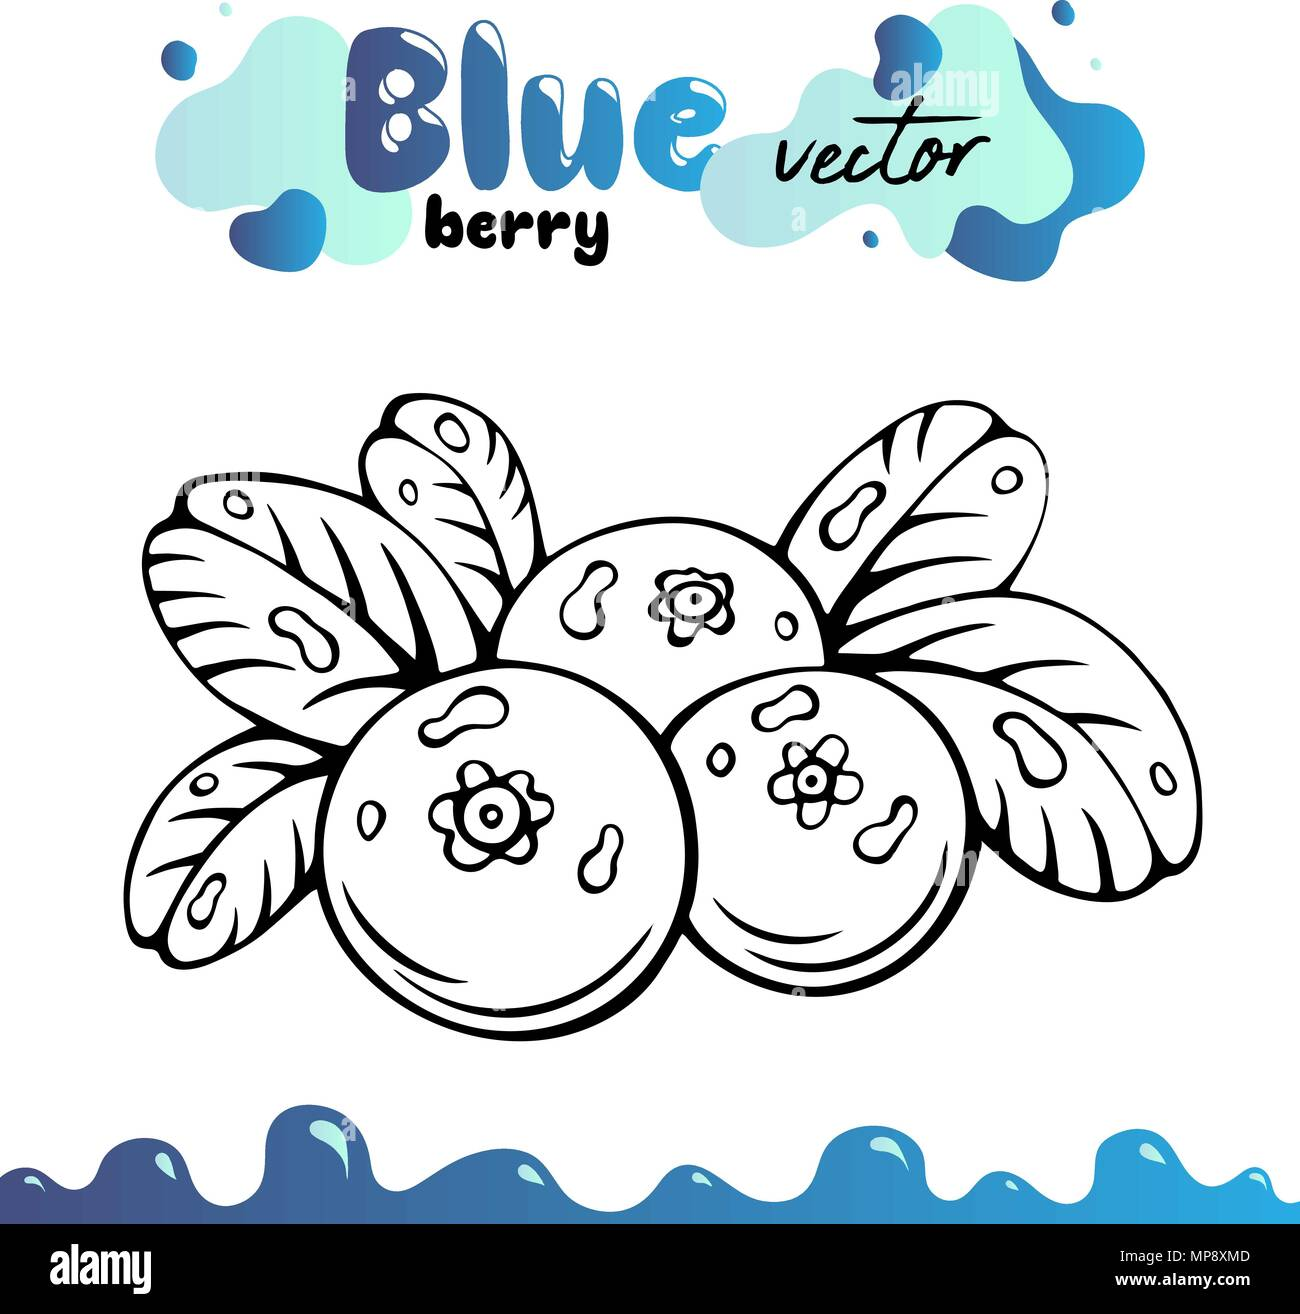 Blueberry vector illustration, berries images. Isolated blueberry vector illustration for menu, package design. Sketch blueberry berries images. Isolated blueberry vector illustration, berries images - Stock Vector